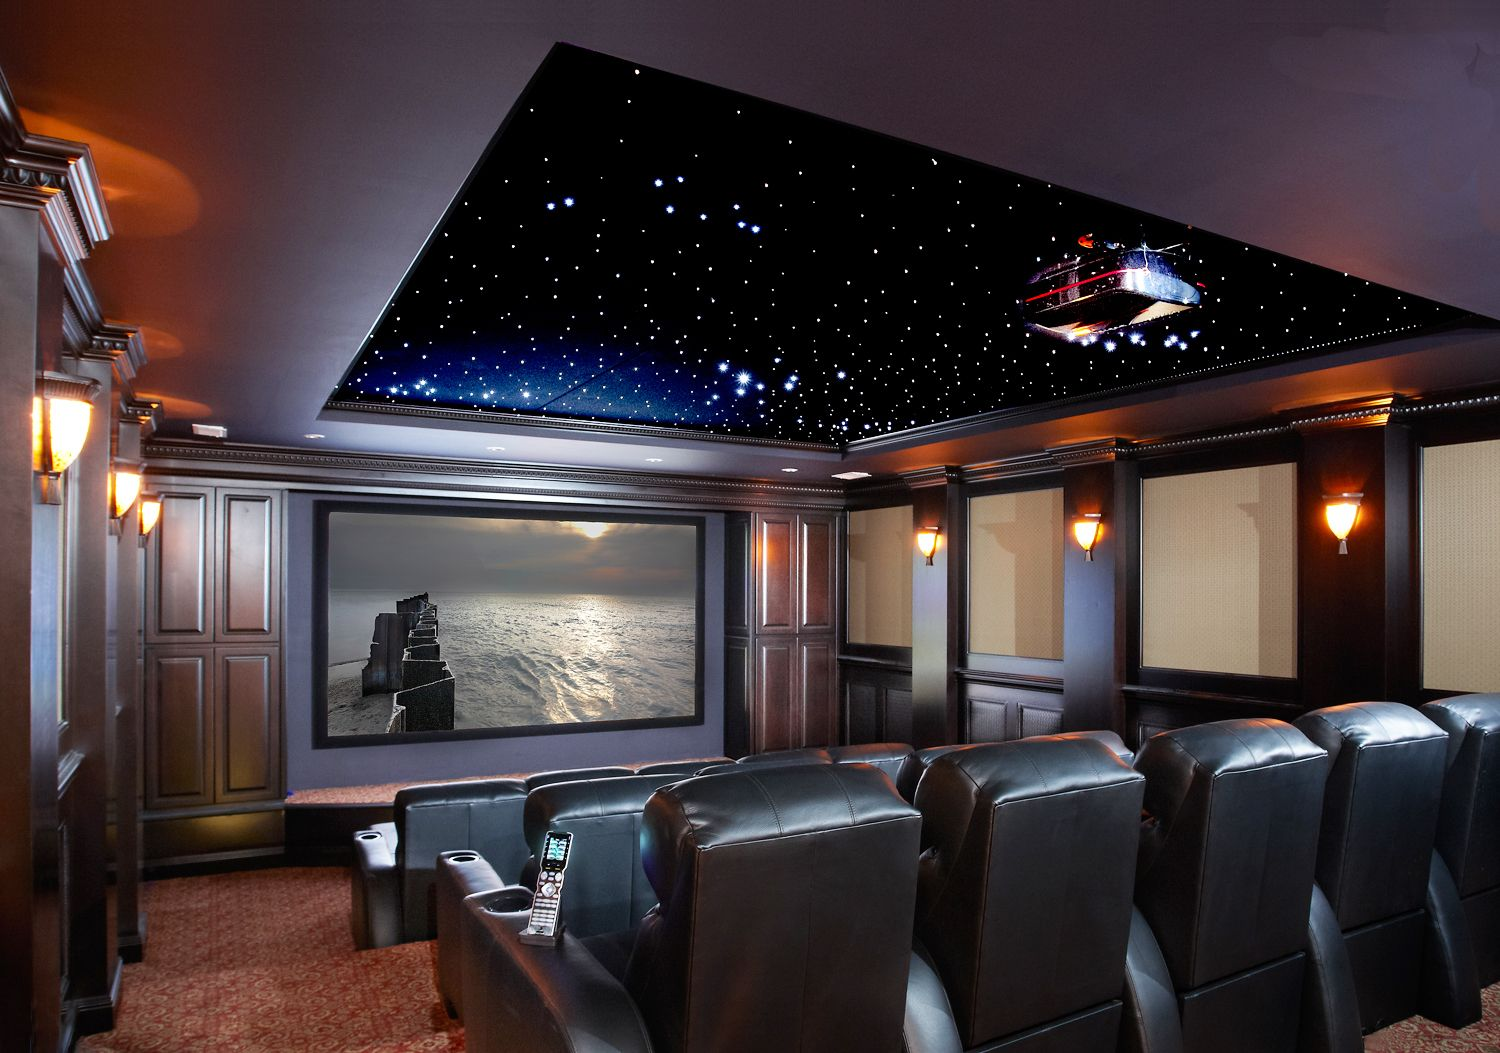 Home Theater Installation Costs Blog Posts Pinterest Wiring A Room Under The Stars Cinema Theatre Setup